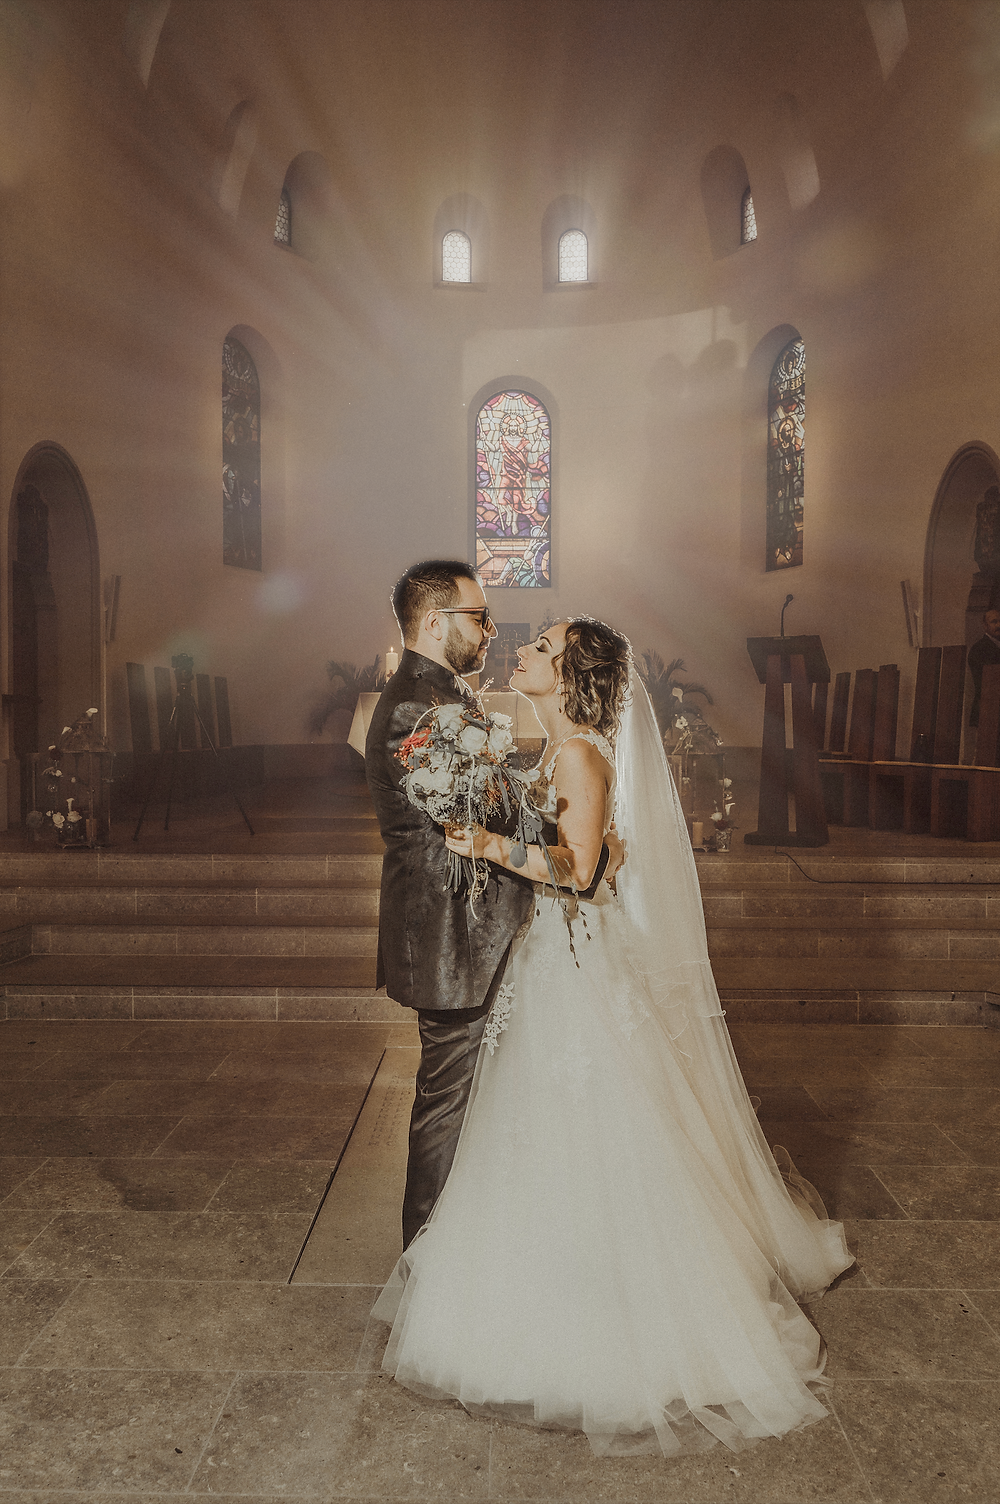 photographe mariage suisse eglise emotion lumiere photoshoot photo de couple magie feerique villars-sur-glane suisse